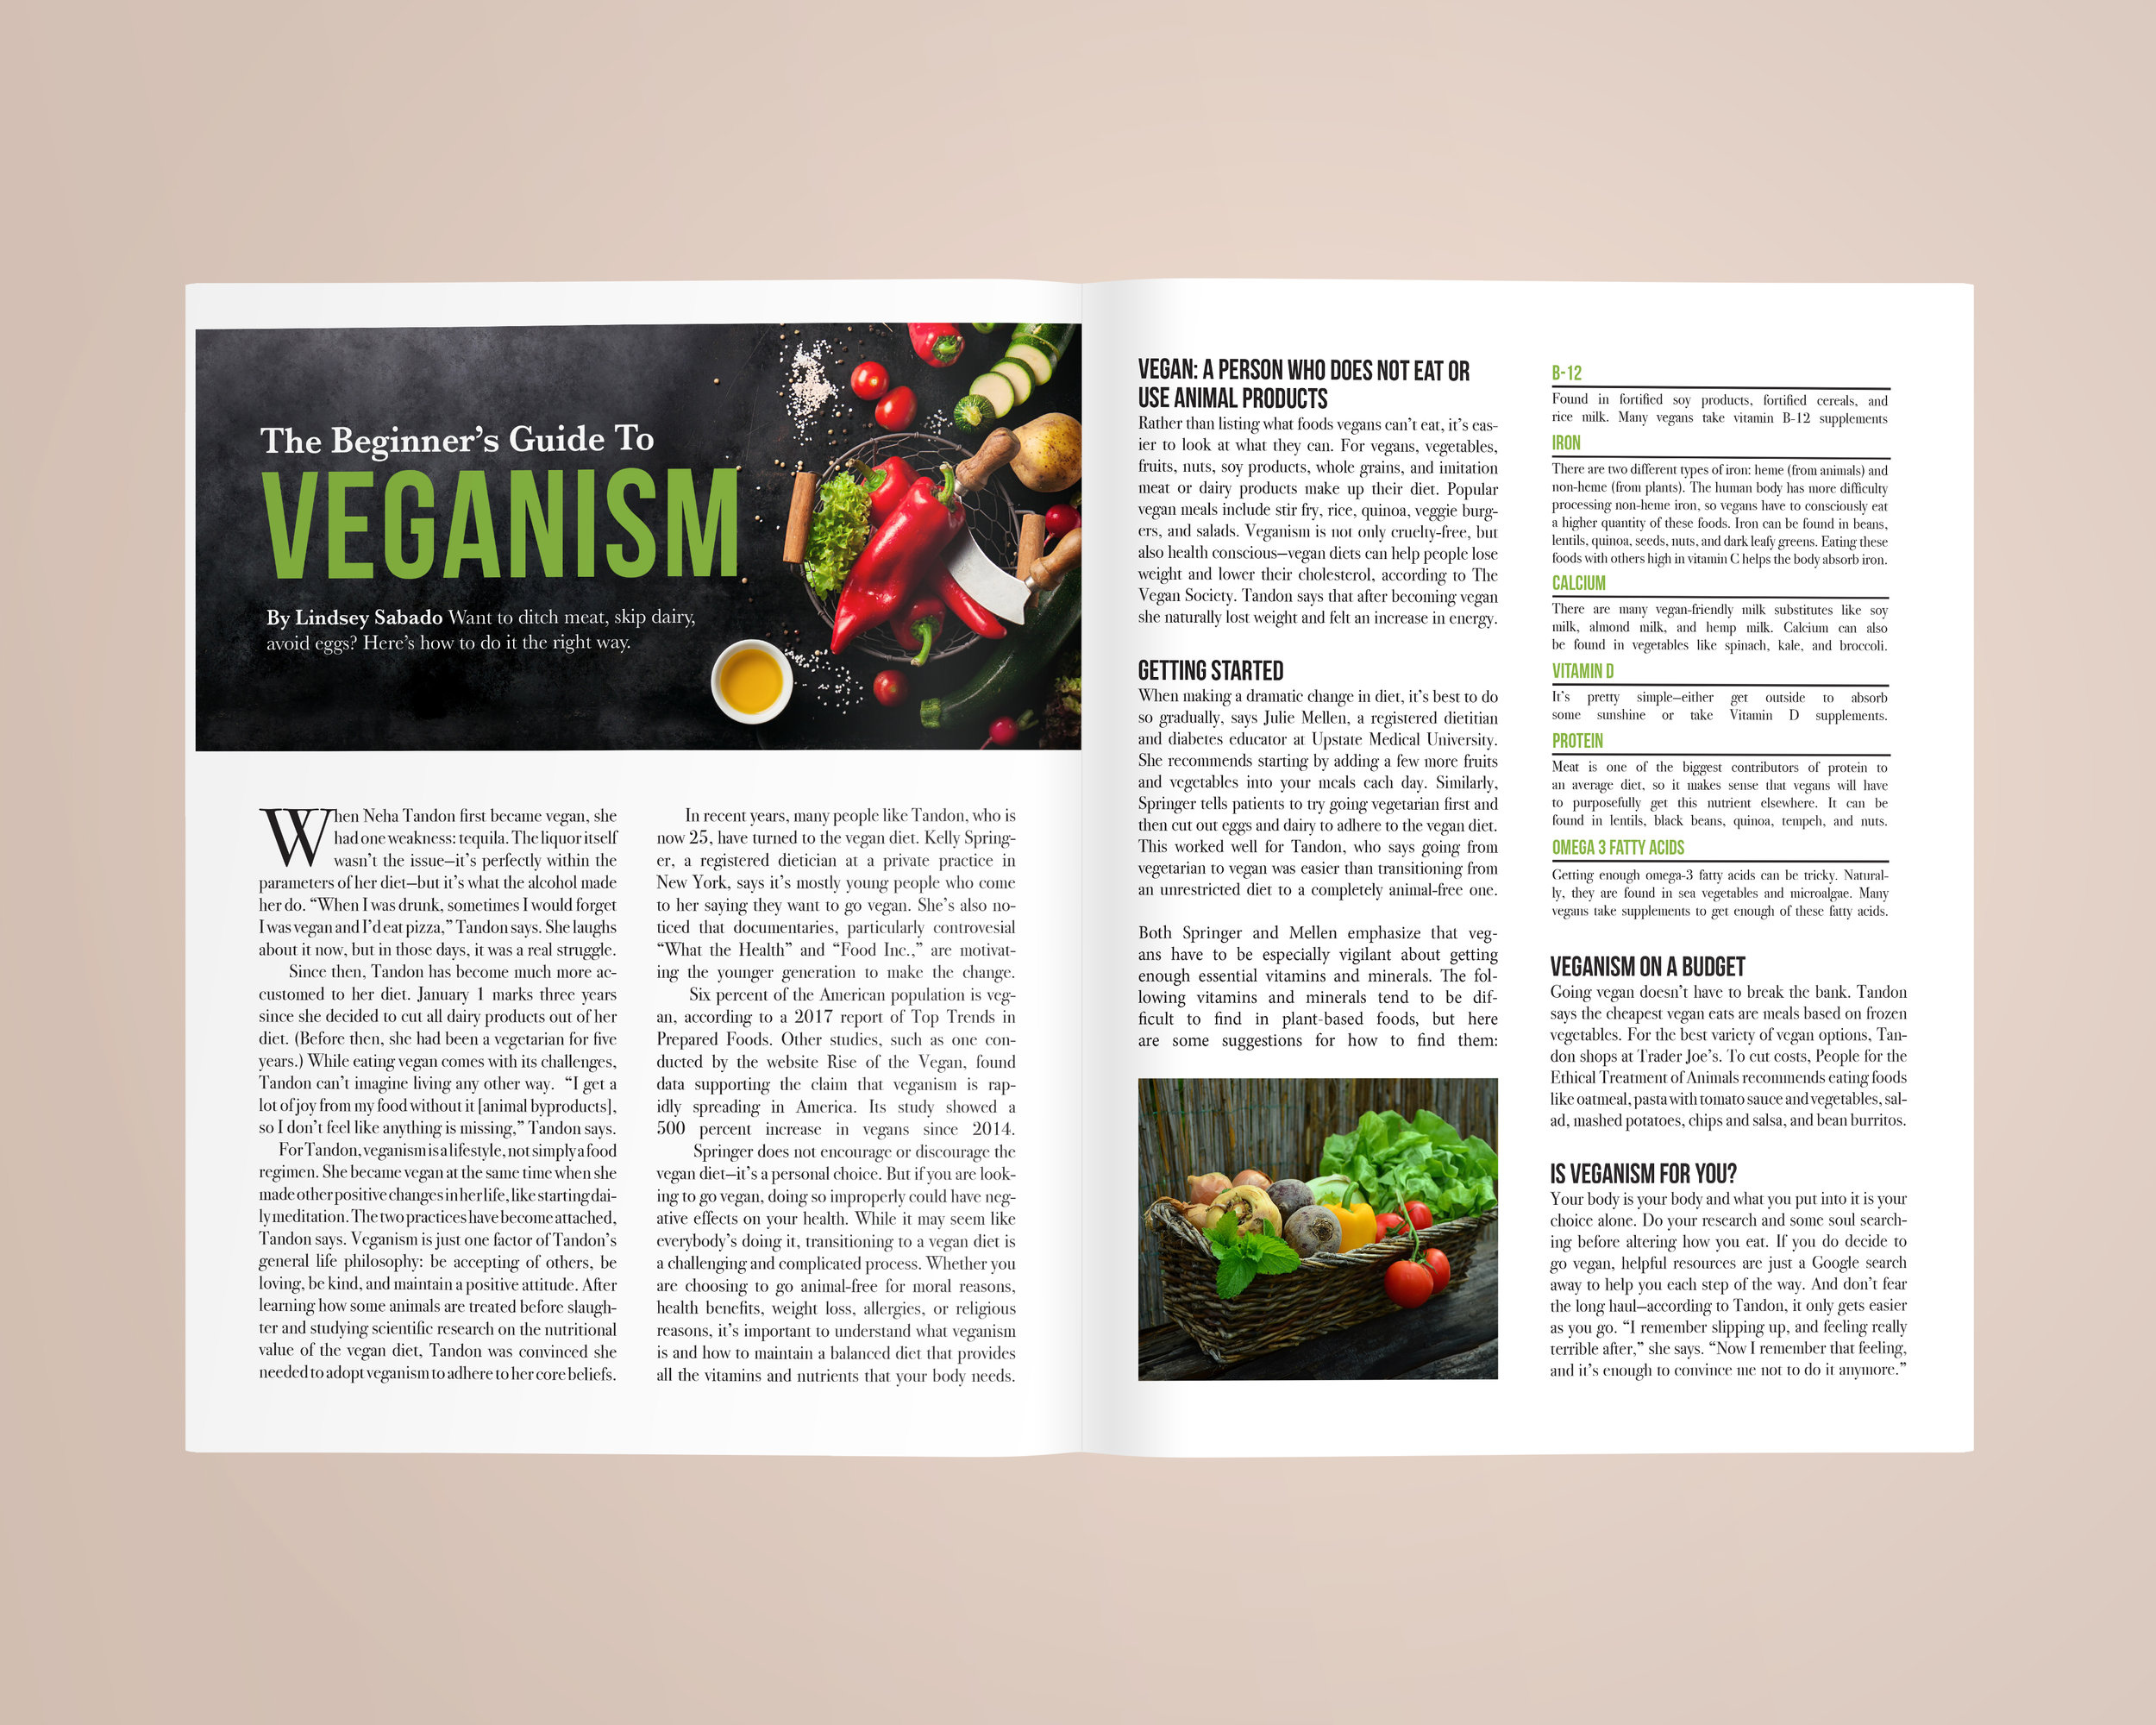 The beginner's guide to veganism  | Fall 2017 | Role: design, photo selection